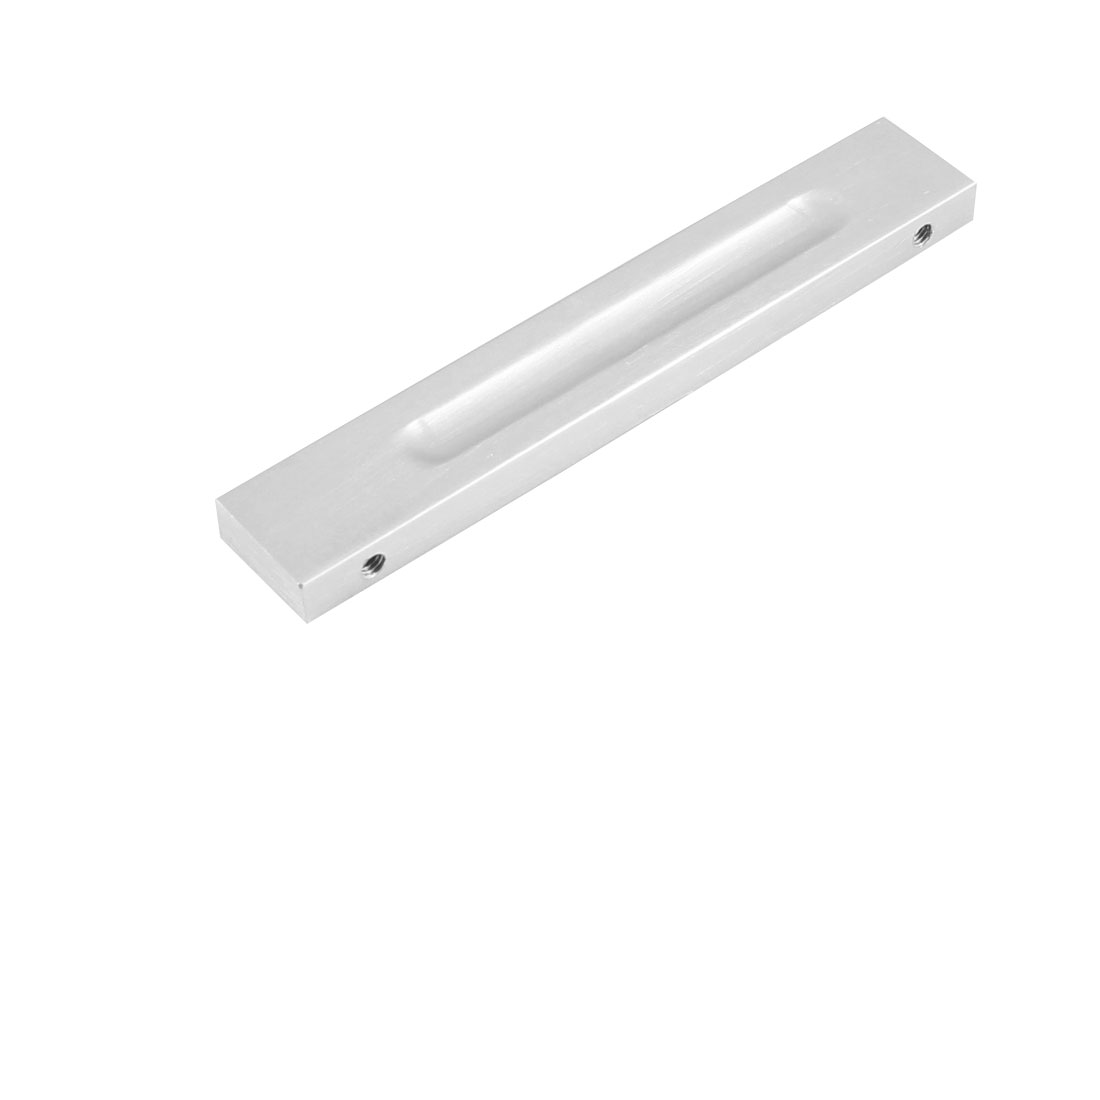 Hardware Cabinet Fitting Silver Tone Aluminum Pull Handle 4.6""